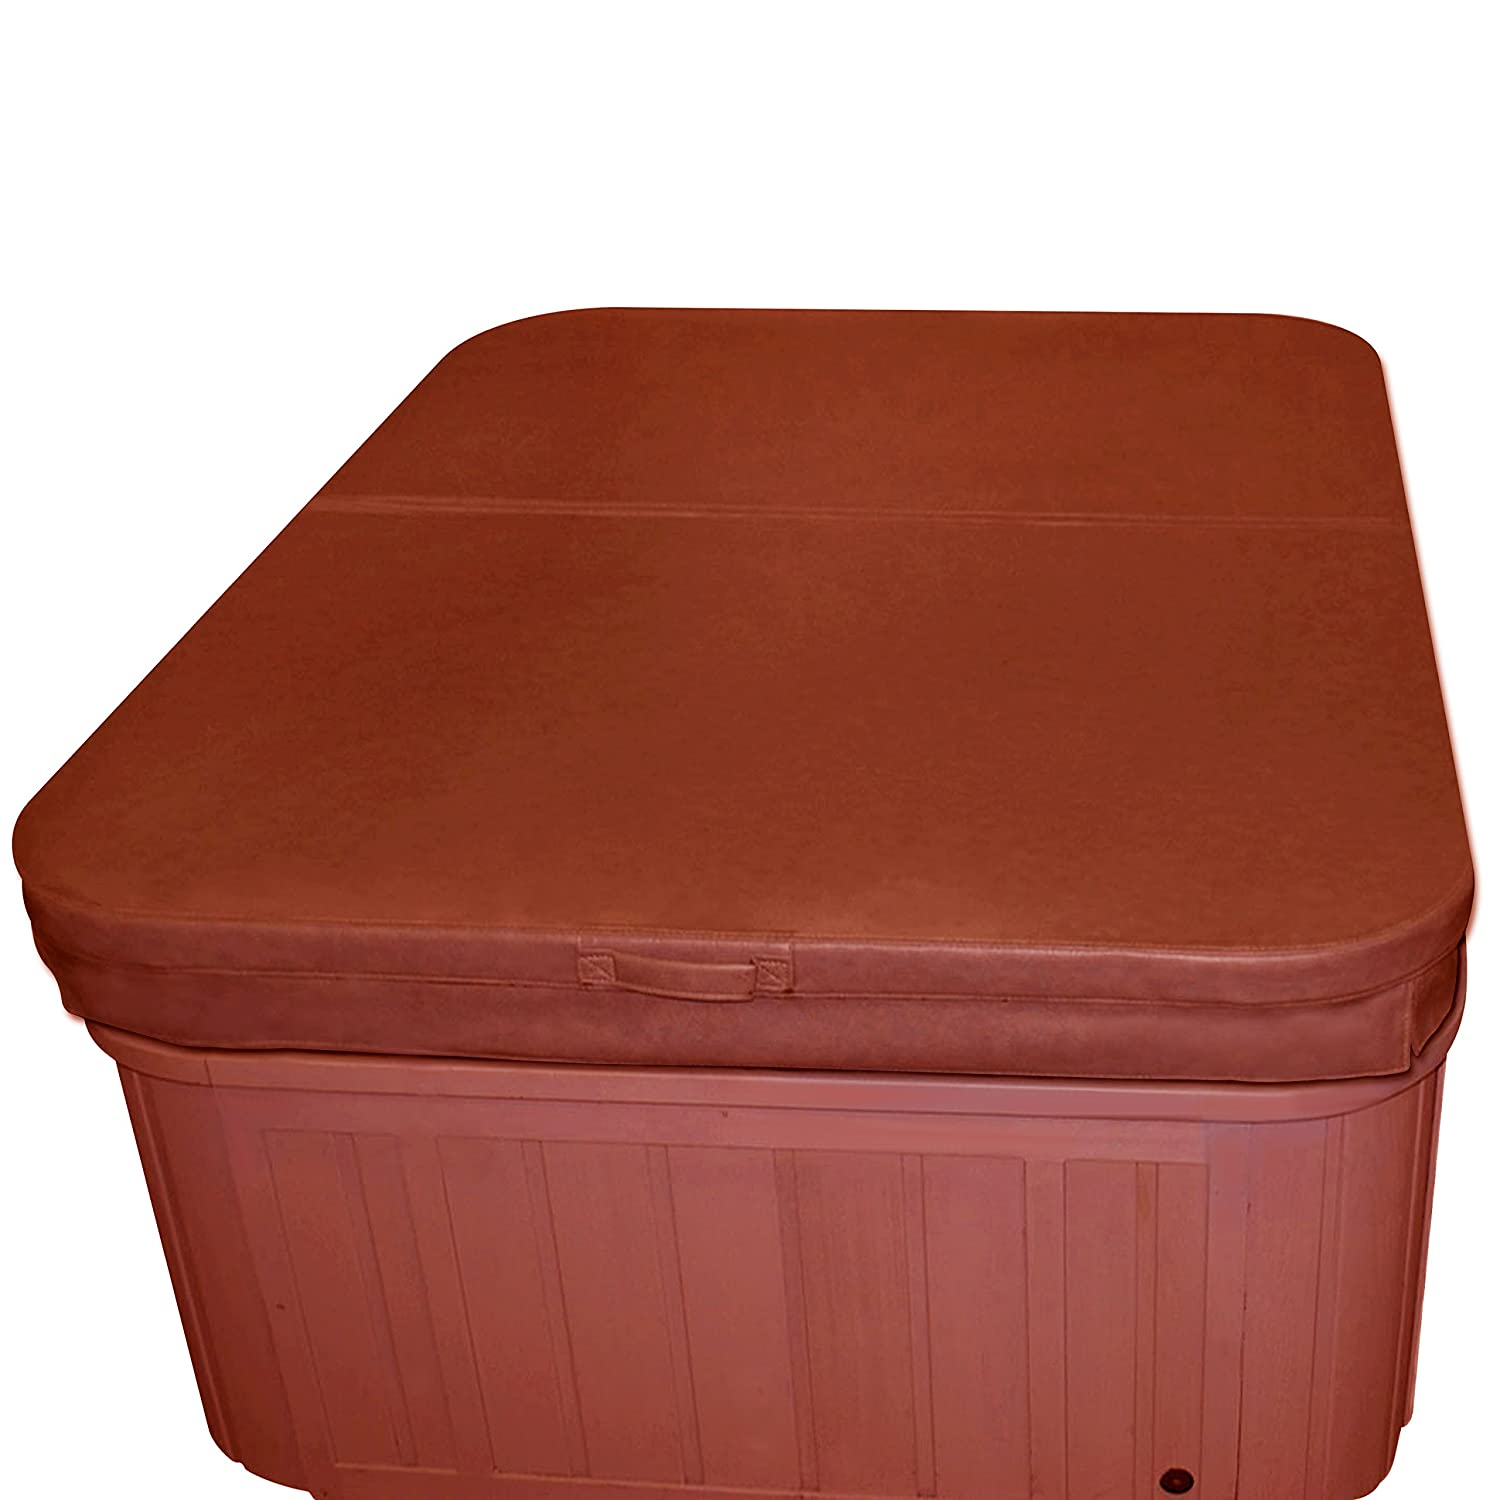 Hot Springs Sovereign Replacement Spa Cover and Hot Tub Cover - Brown